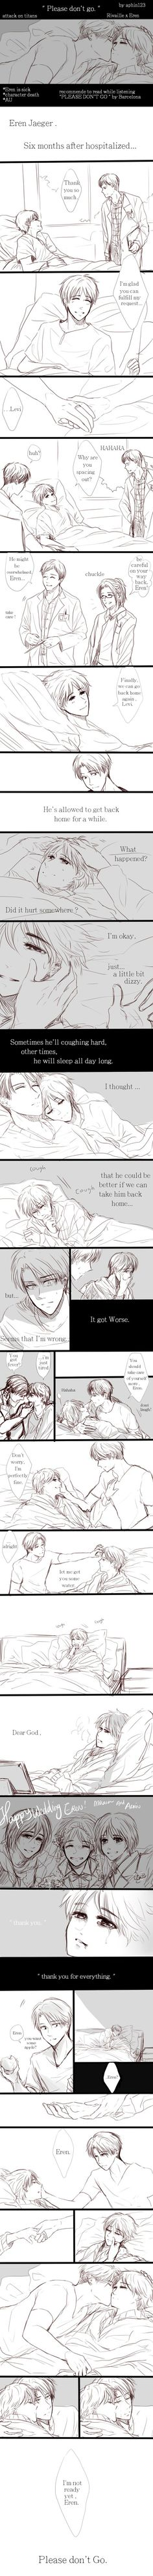 Read while listening to this song >> www.youtube.com/watch?v=1n0kdY… laksjdlkasjdlkajsdlk I LOVE ANGST , AND FINALLY I CAN DRAW A COMIC FOR MY OTEPEH RIVAERE FTW scene is inspirated by...